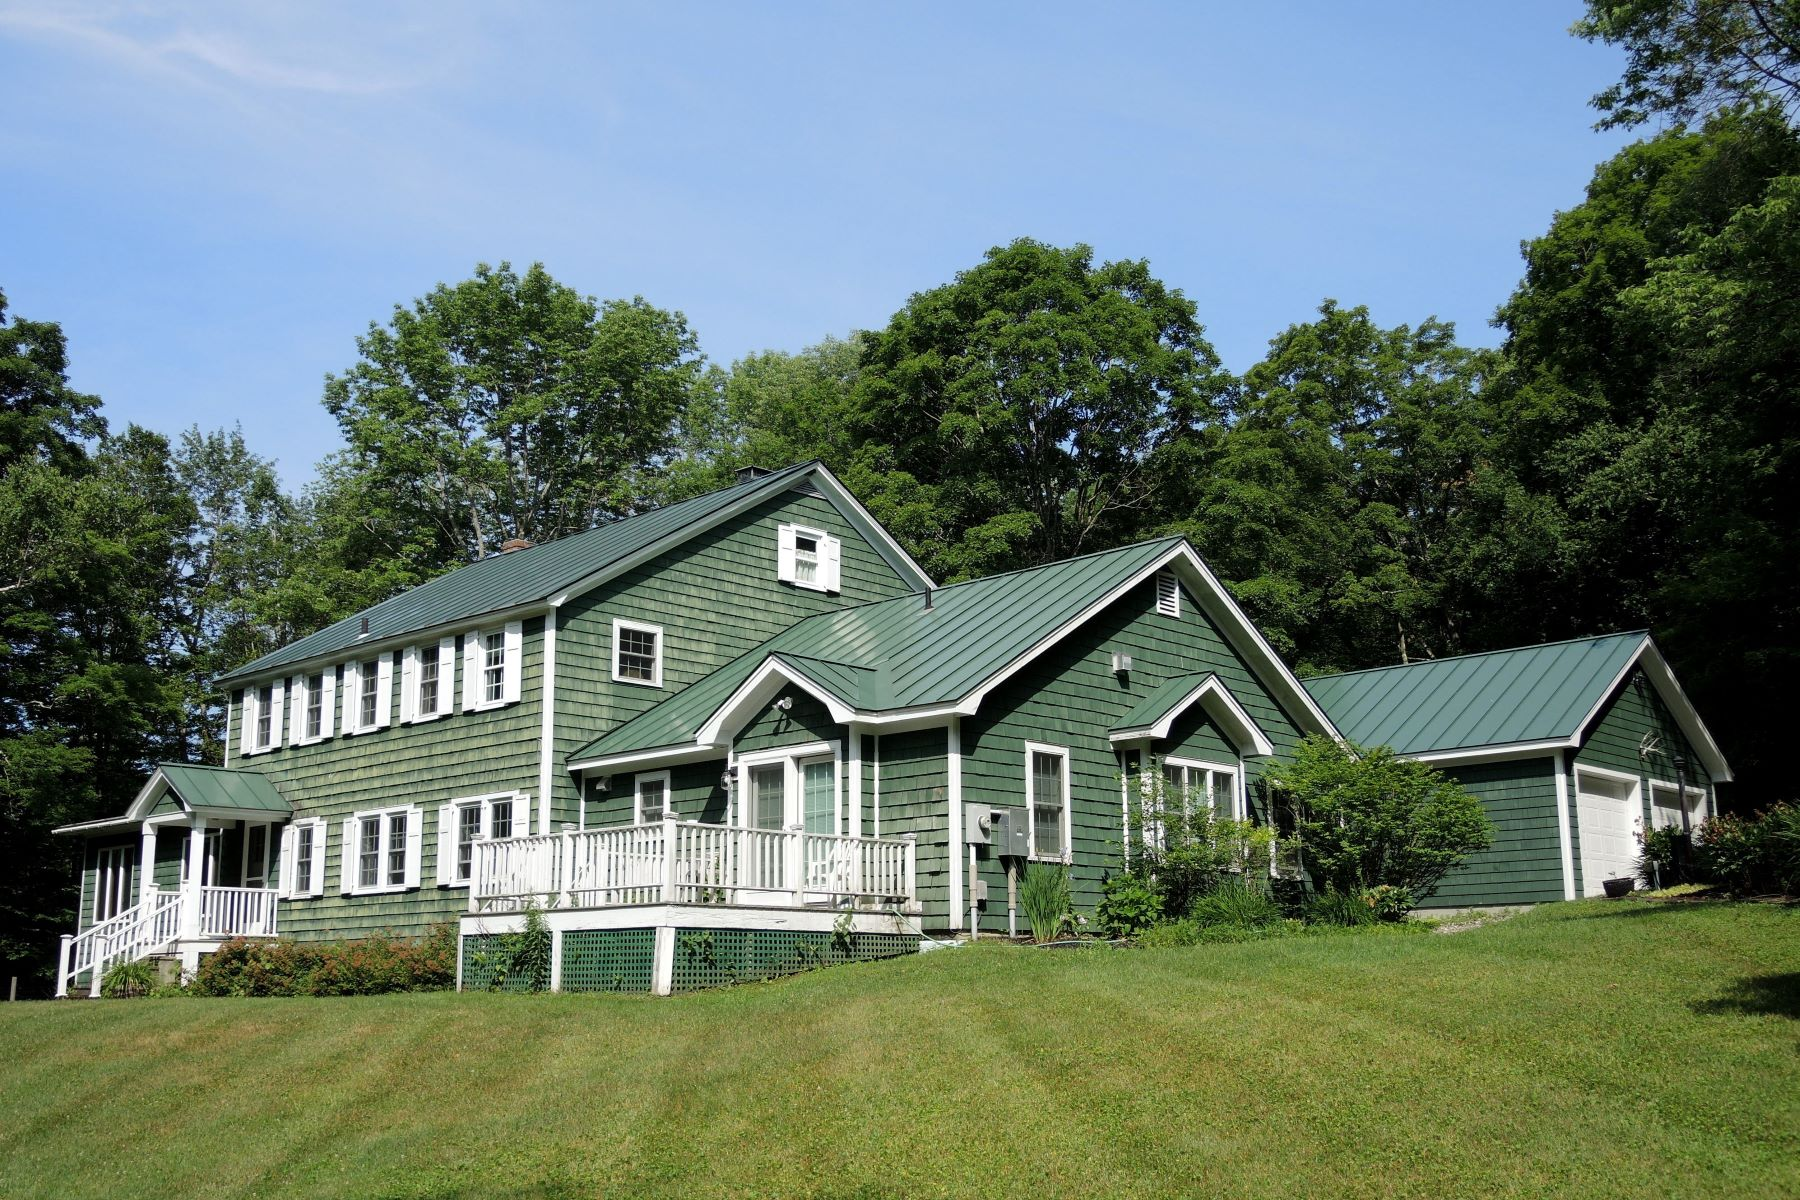 Single Family Home for Sale at Two Home Barstow Estate 49/51 Dam Rd Chittenden, Vermont 05737 United States